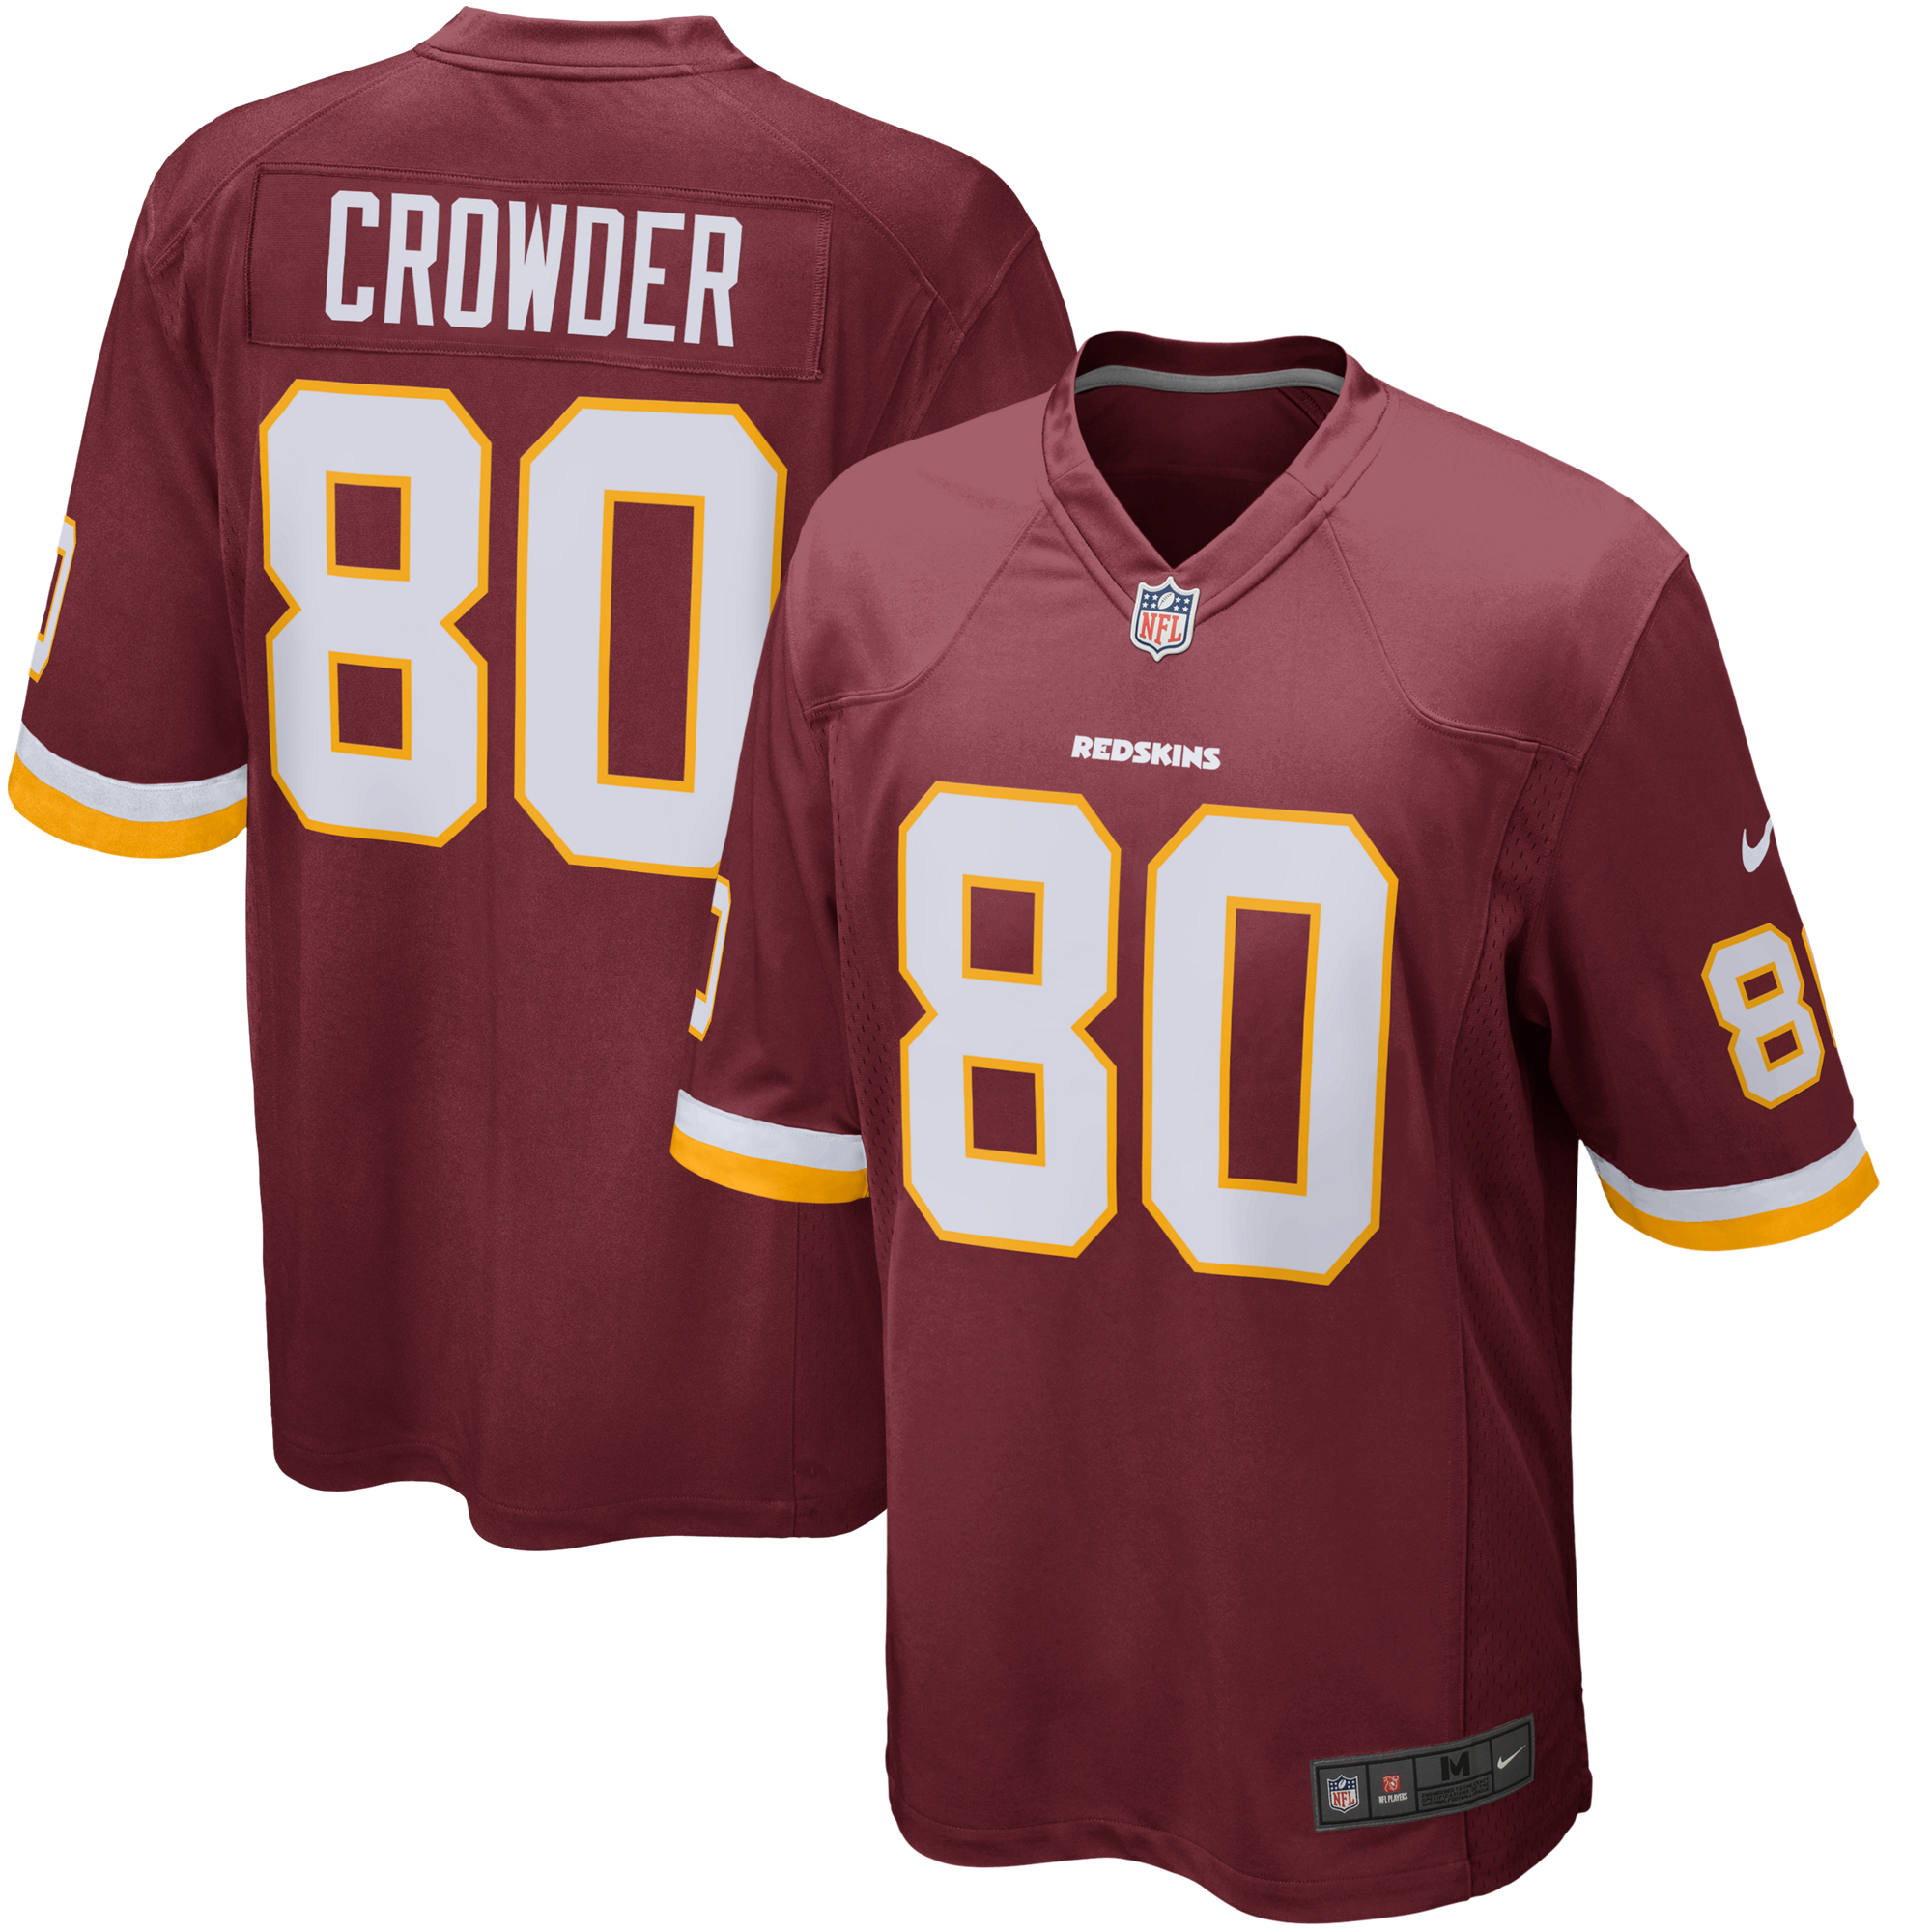 Jamison Crowder Washington Redskins Nike Youth Game Jersey - Burgundy